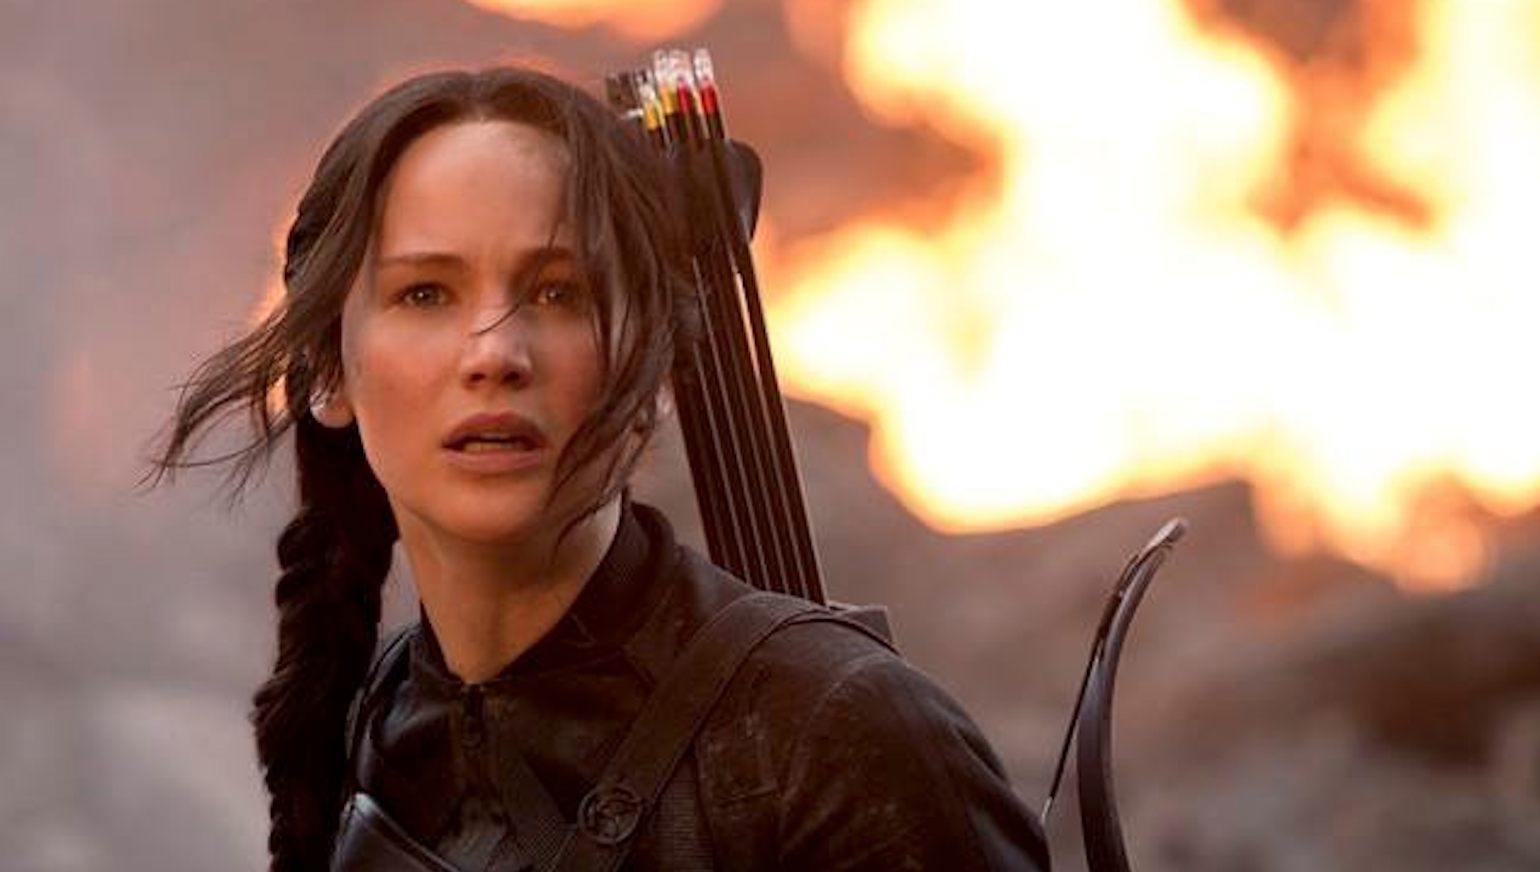 The Hunger Games Mockingjay Part 1 Movie Review — The Metaplex